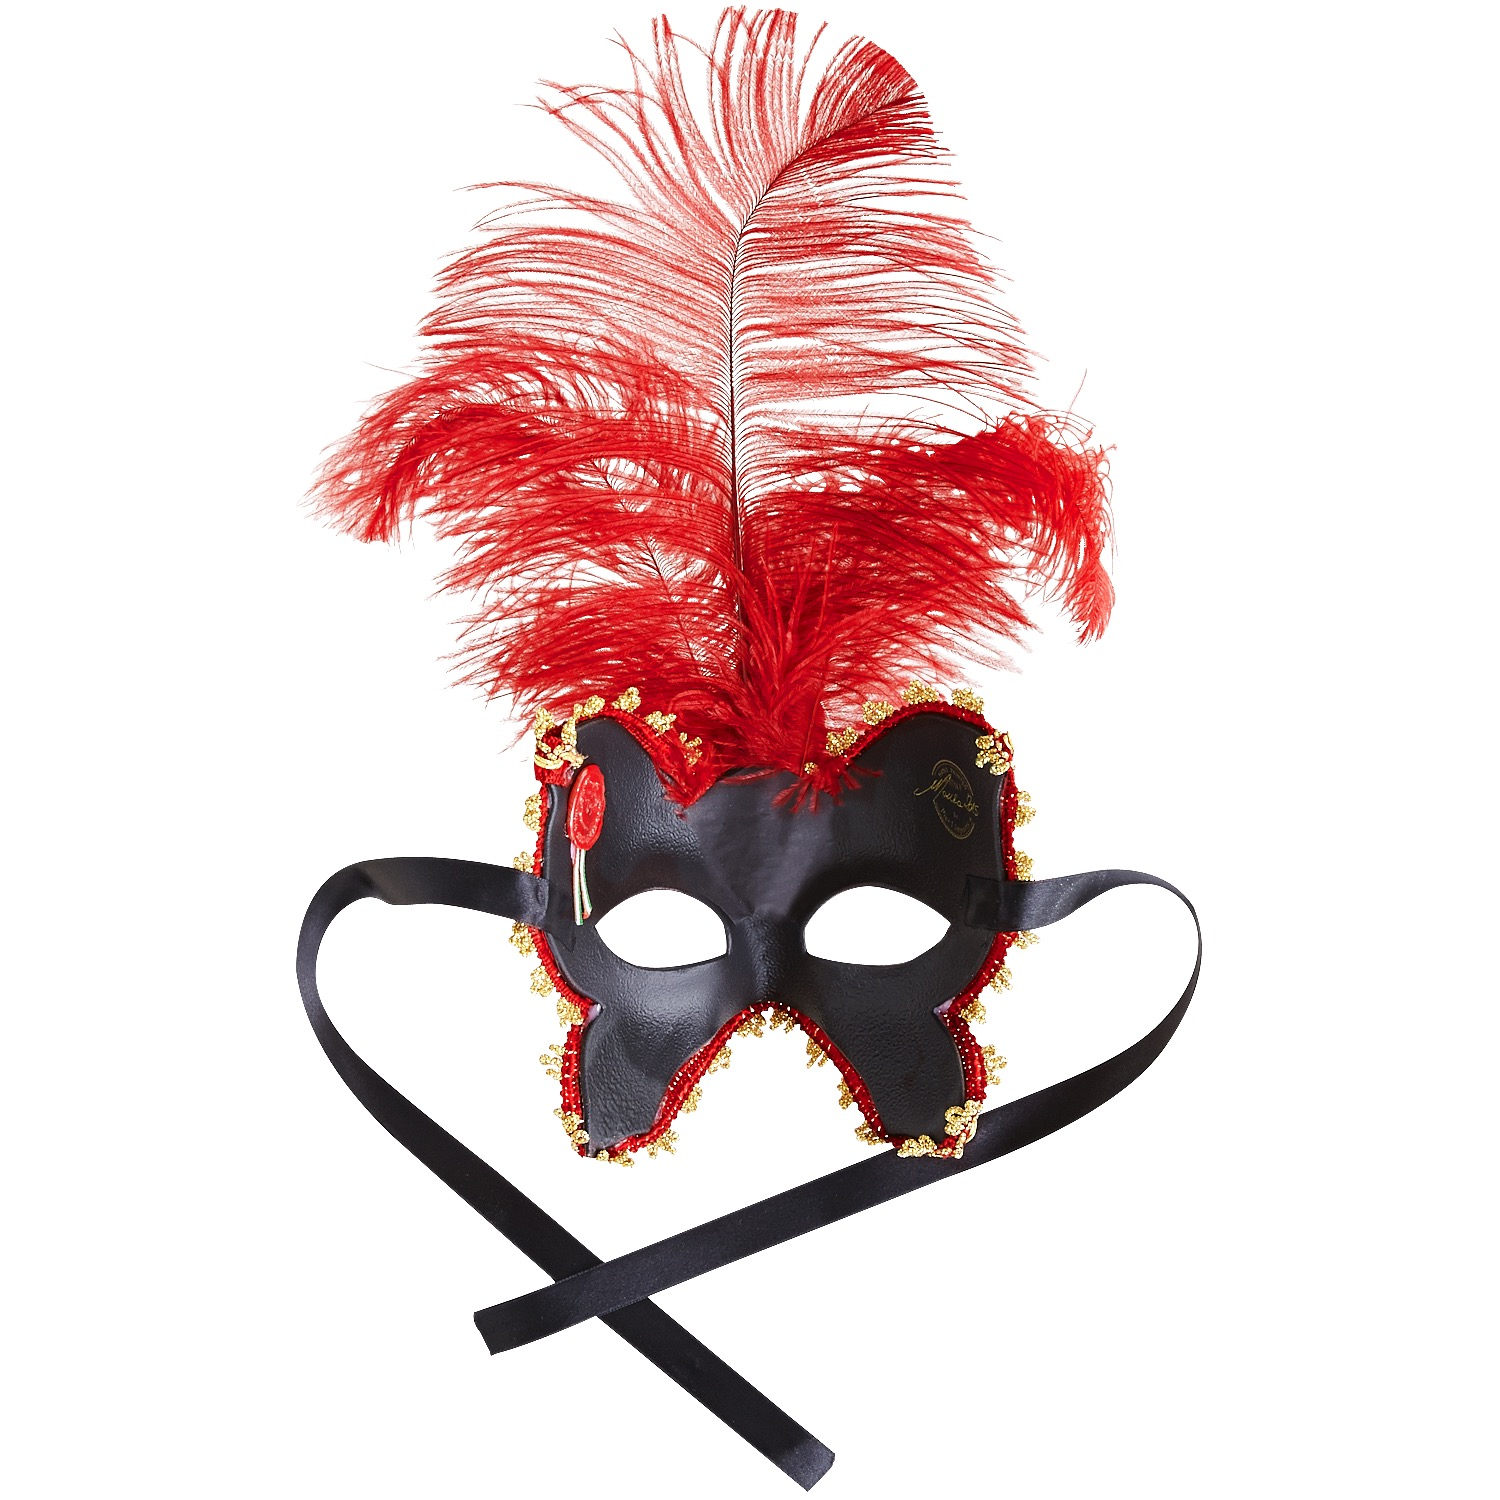 Butterfly Italian Masquerade Mask - Red & Gold